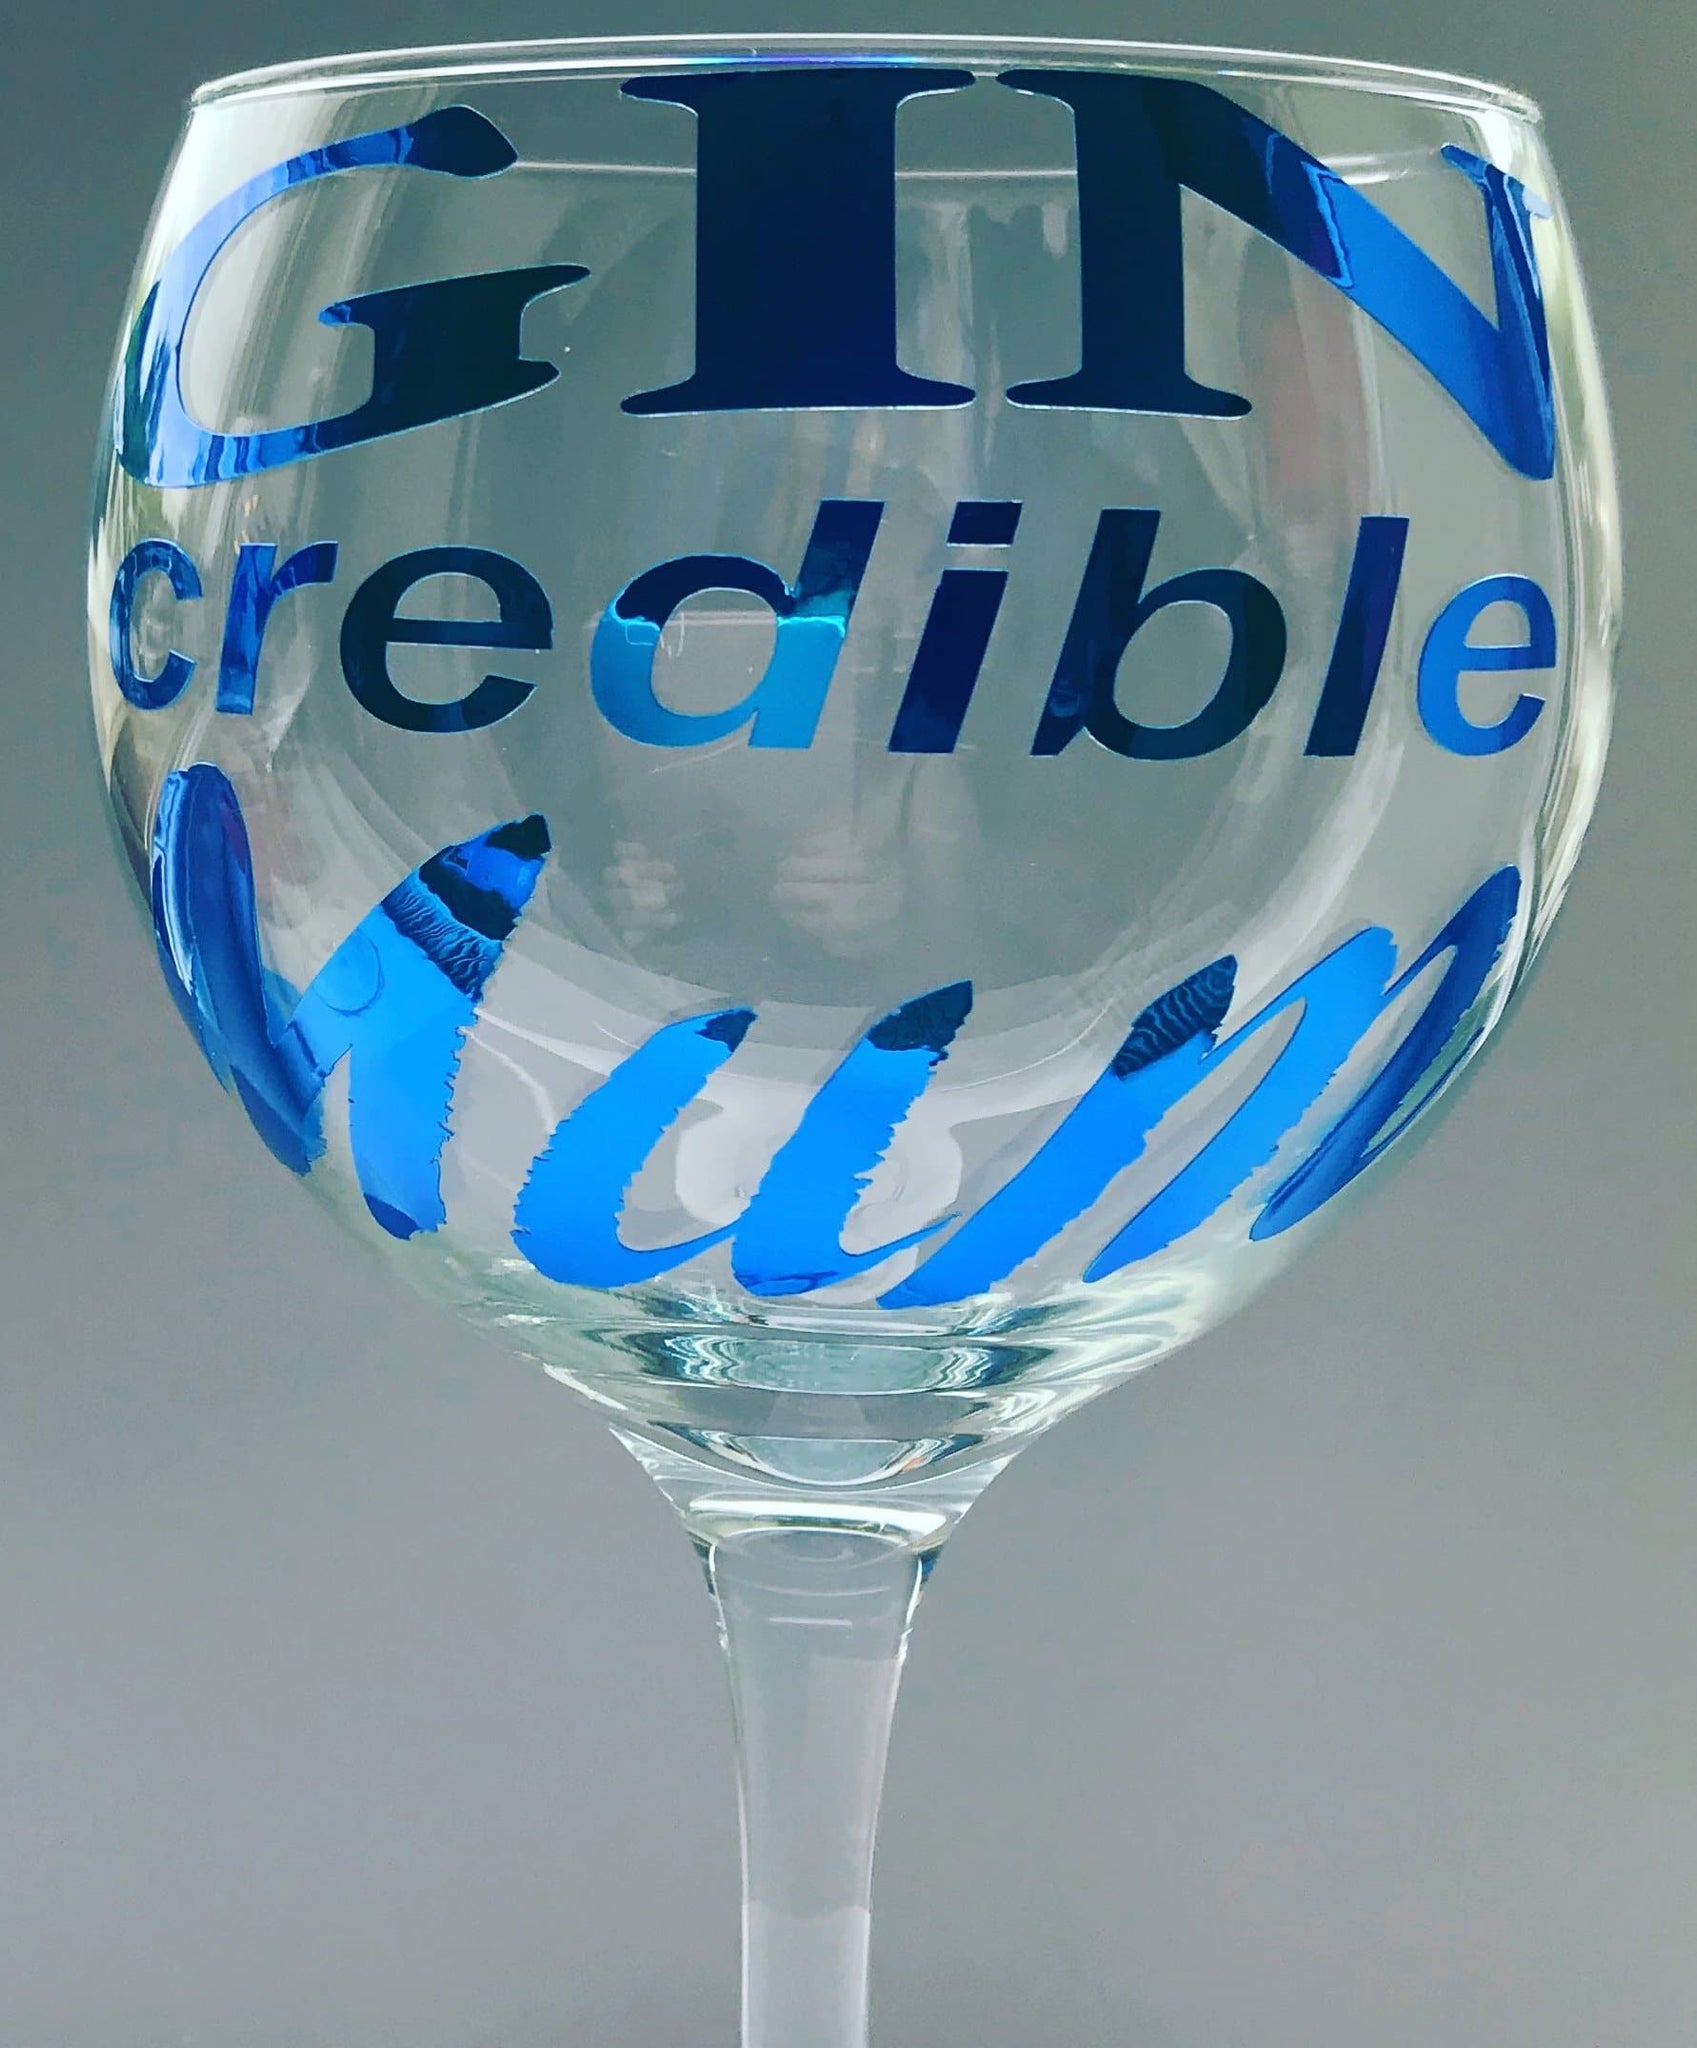 Gin credible mum gin glass